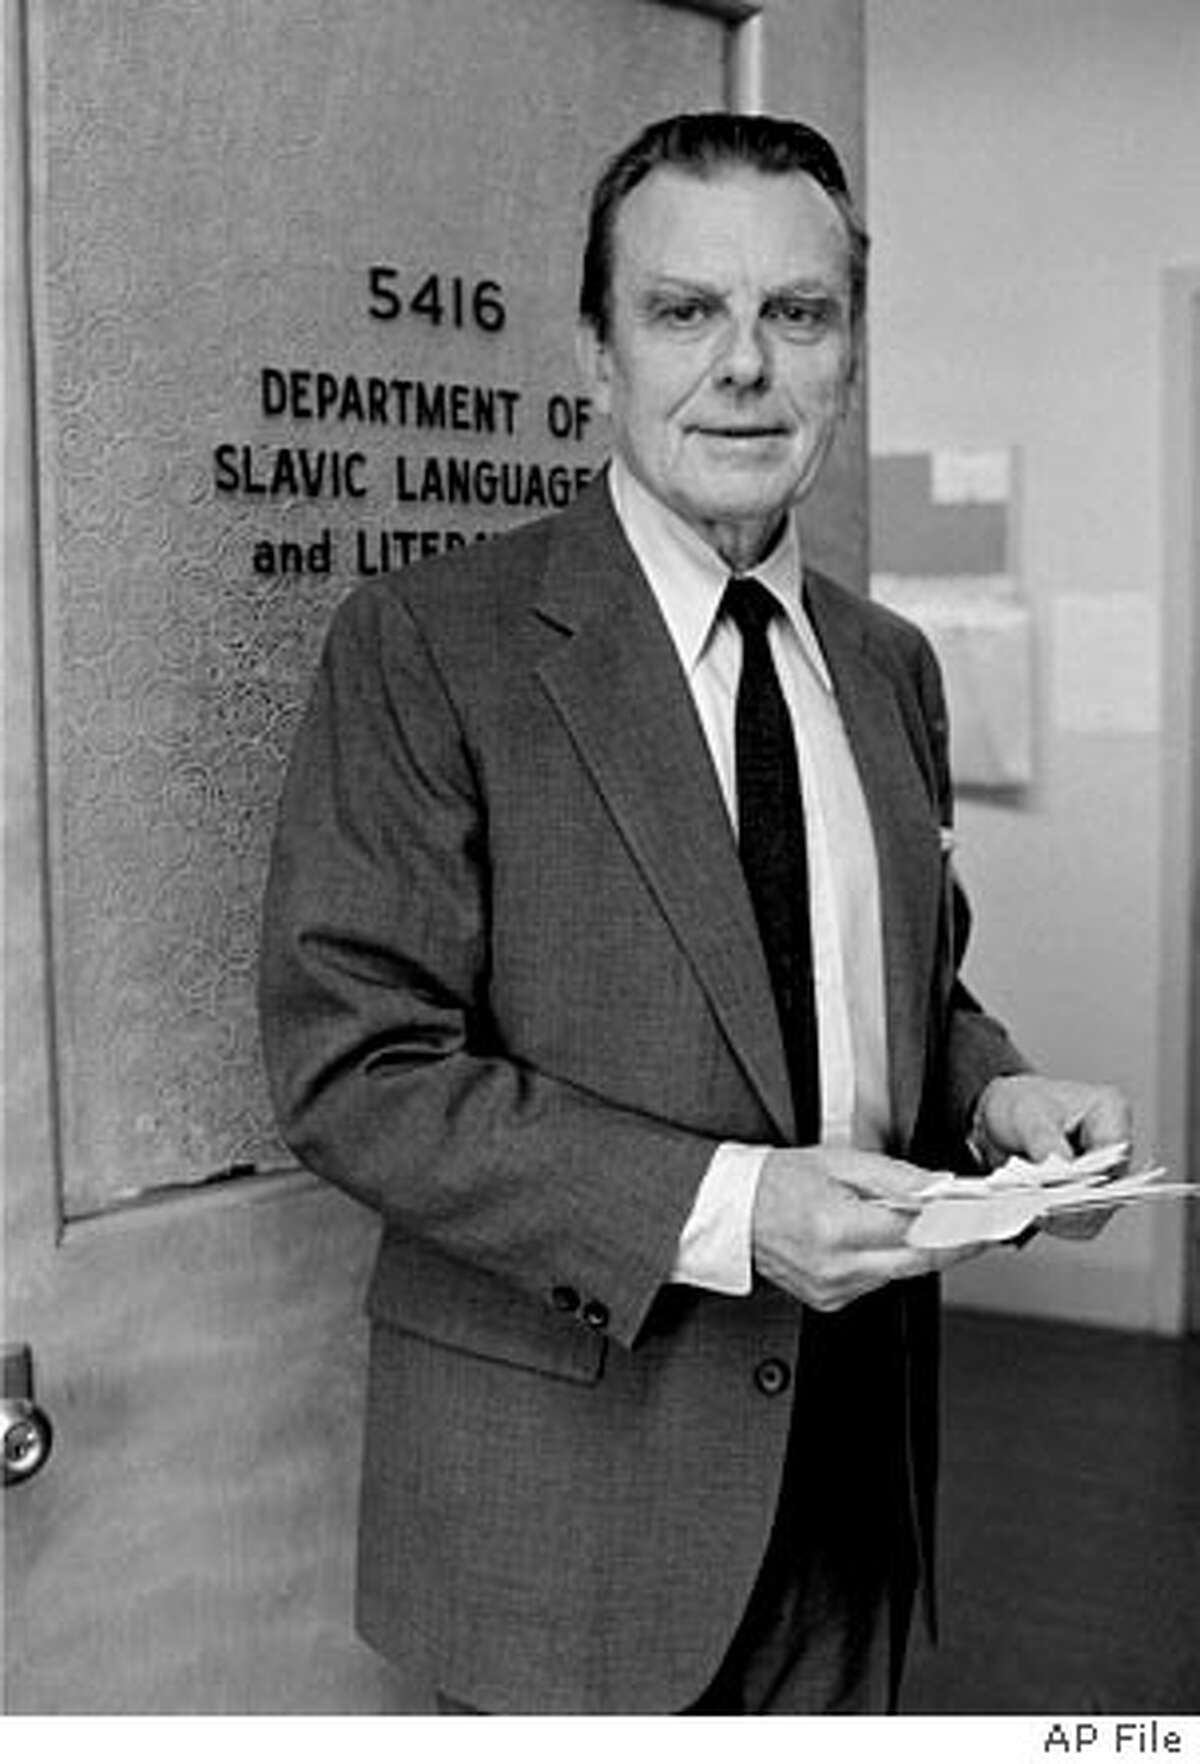 *** FILE *** Nobel Prize winner for literature Czeslaw Milosz poses at his office at the University of California in this Thursday, Oct. 10, 1980 file photo. The Polish poet and Nobel laureate Czeslaw Milosz, known for his intellectual and emotional works about some of the worst cruelties of the 20th century, died Saturday, the Polish news agency PAP reported. He was 93. (AP Photo)